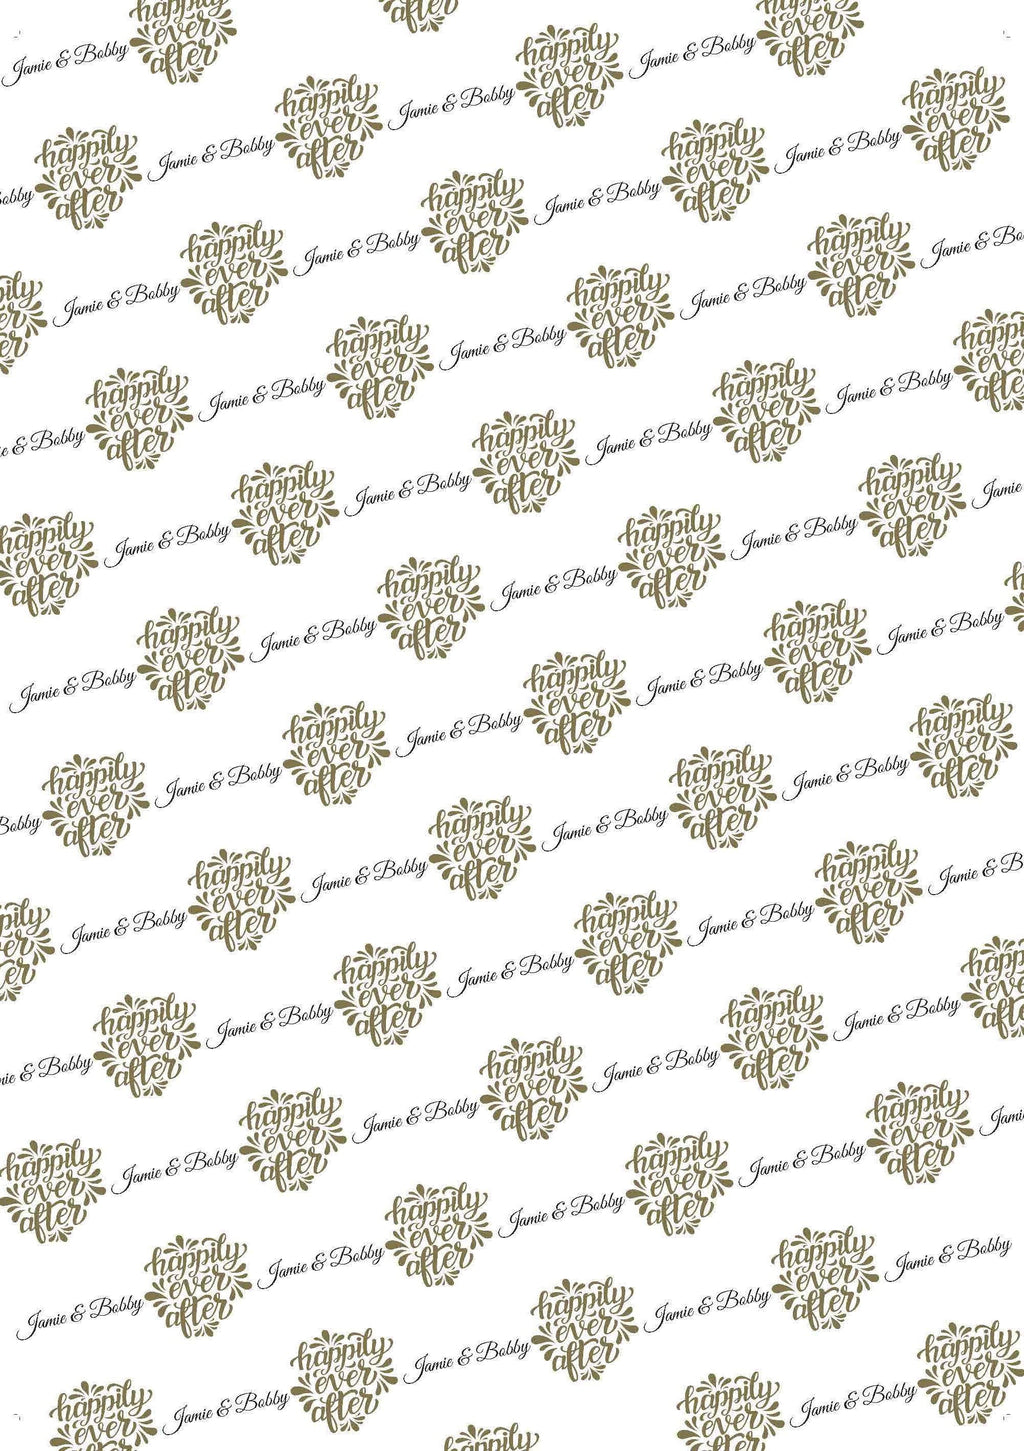 Wedding Happily Ever After Personalized Gift Wrap - Potter's Printing